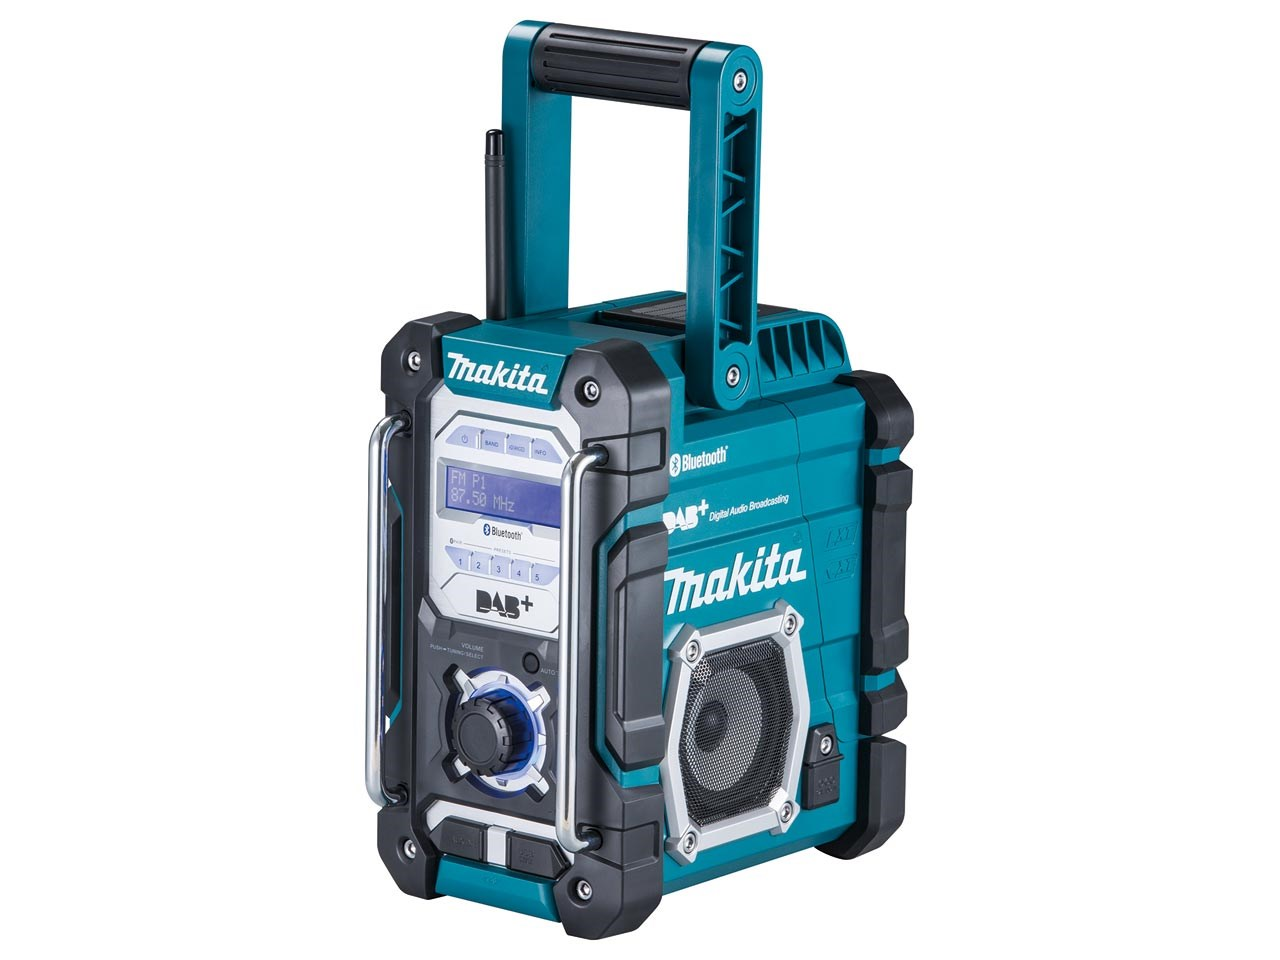 makita dmr112 dab dabplus job site bluetooth radio. Black Bedroom Furniture Sets. Home Design Ideas